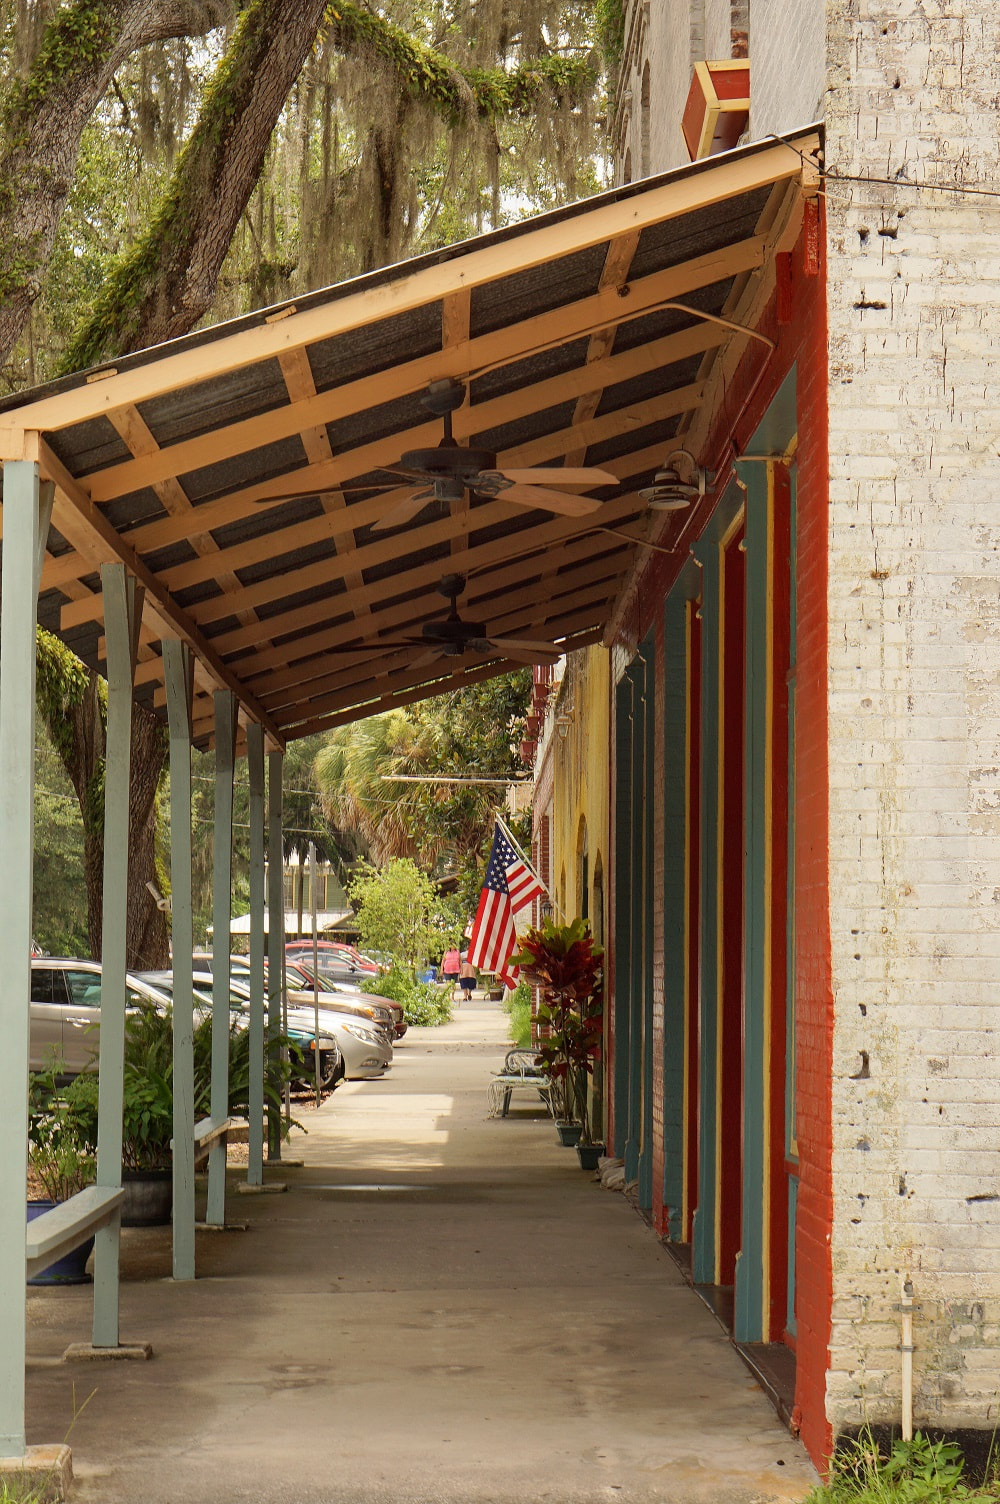 Picture of a walkway in Micanopy, Florida